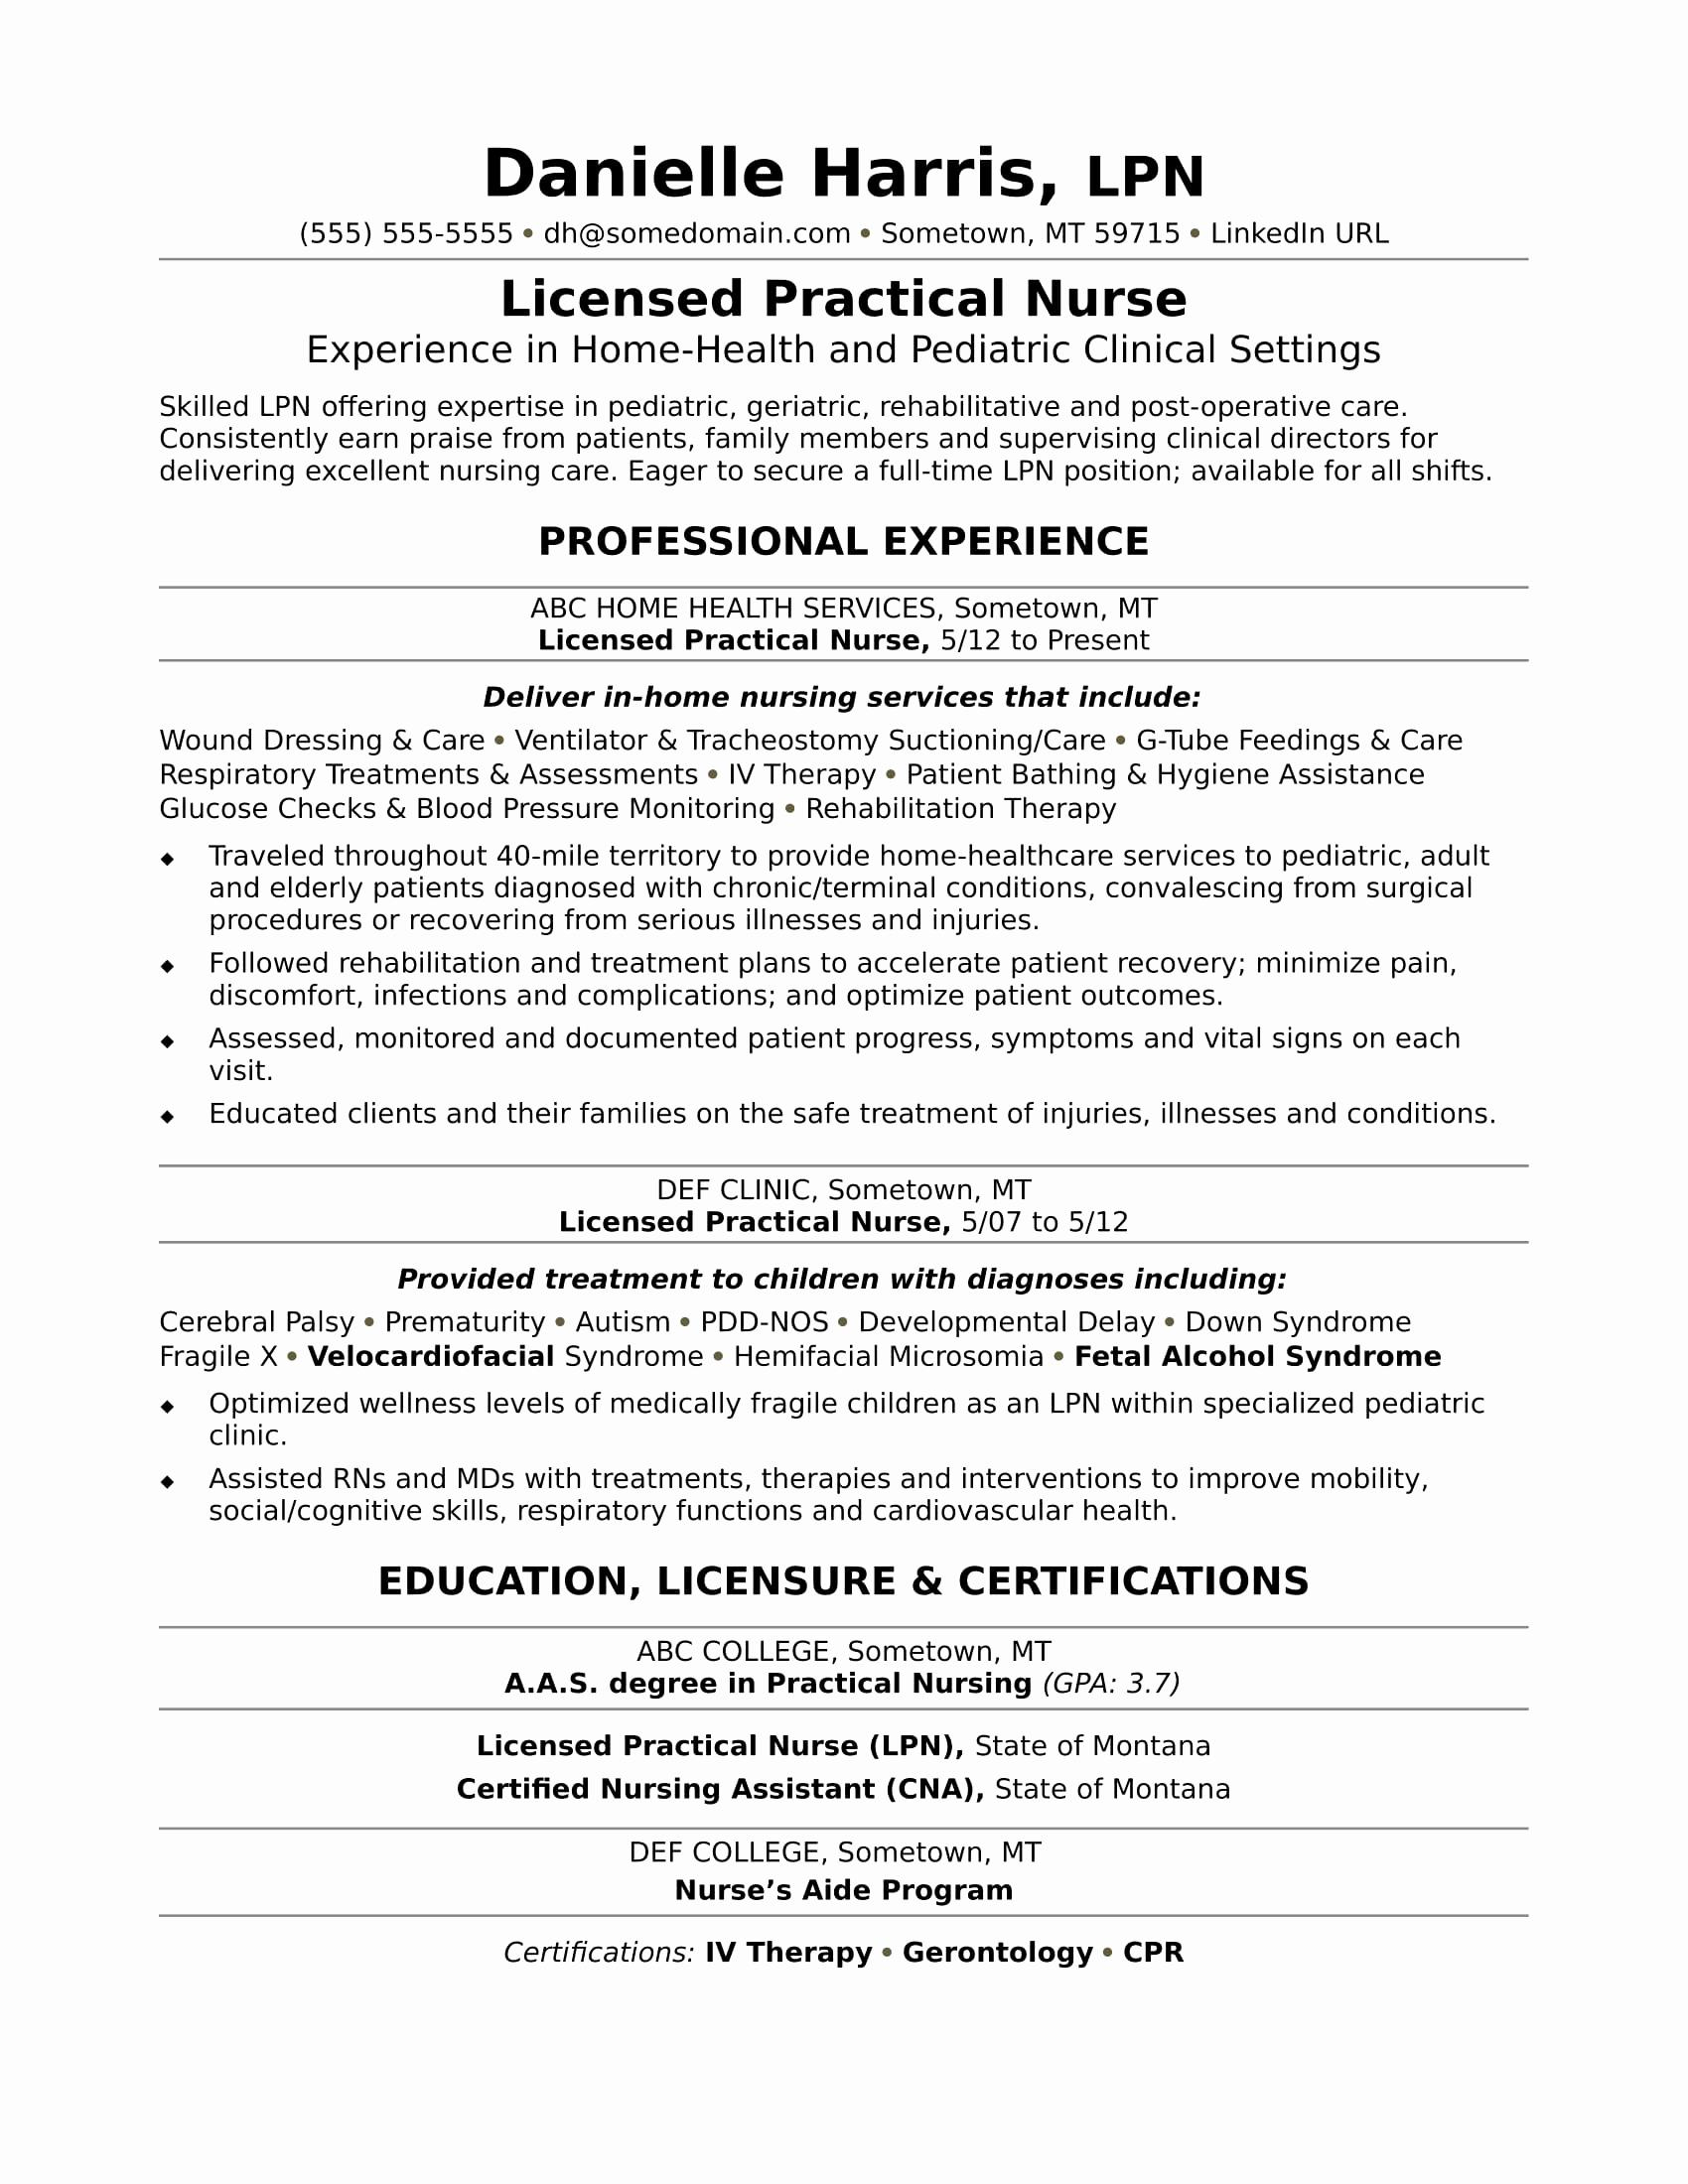 Medical Administrative assistant Resume - Medical Administration Resume Sample Unique Elegant New Nurse Resume